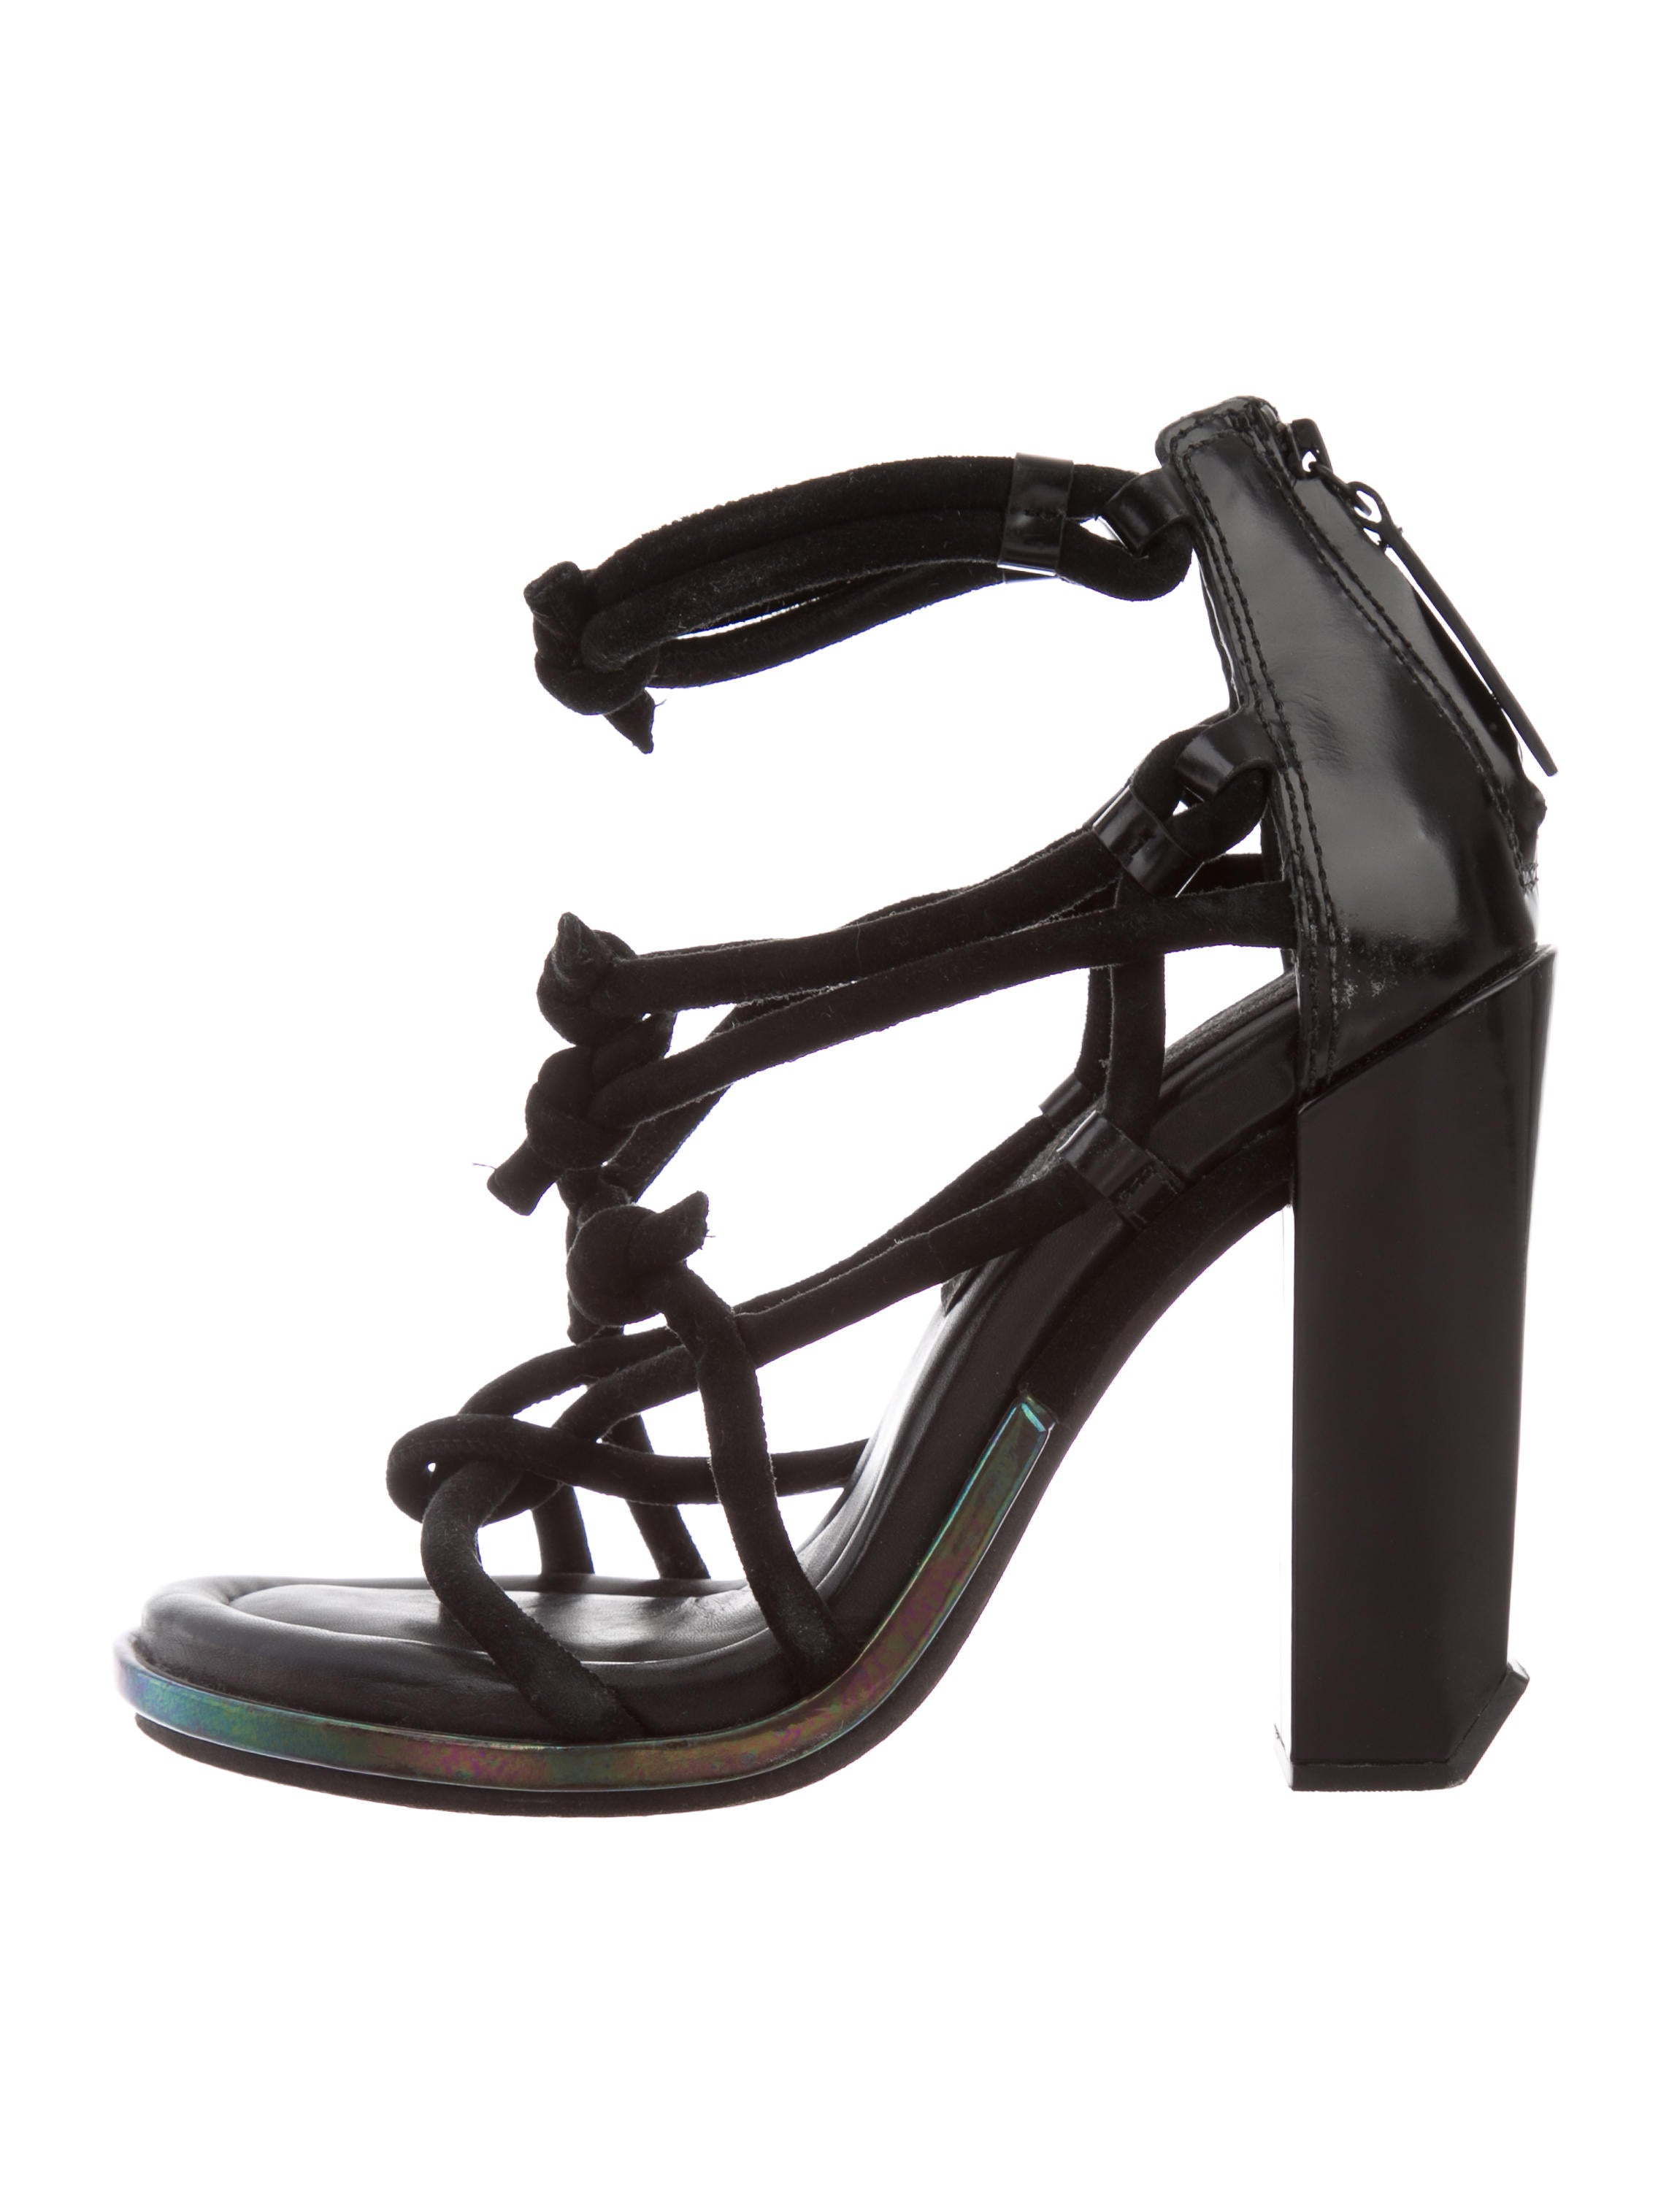 buy cheap low price fee shipping Alexander Wang Suede Knot-Accented Sandals free shipping visa payment 35aft4m